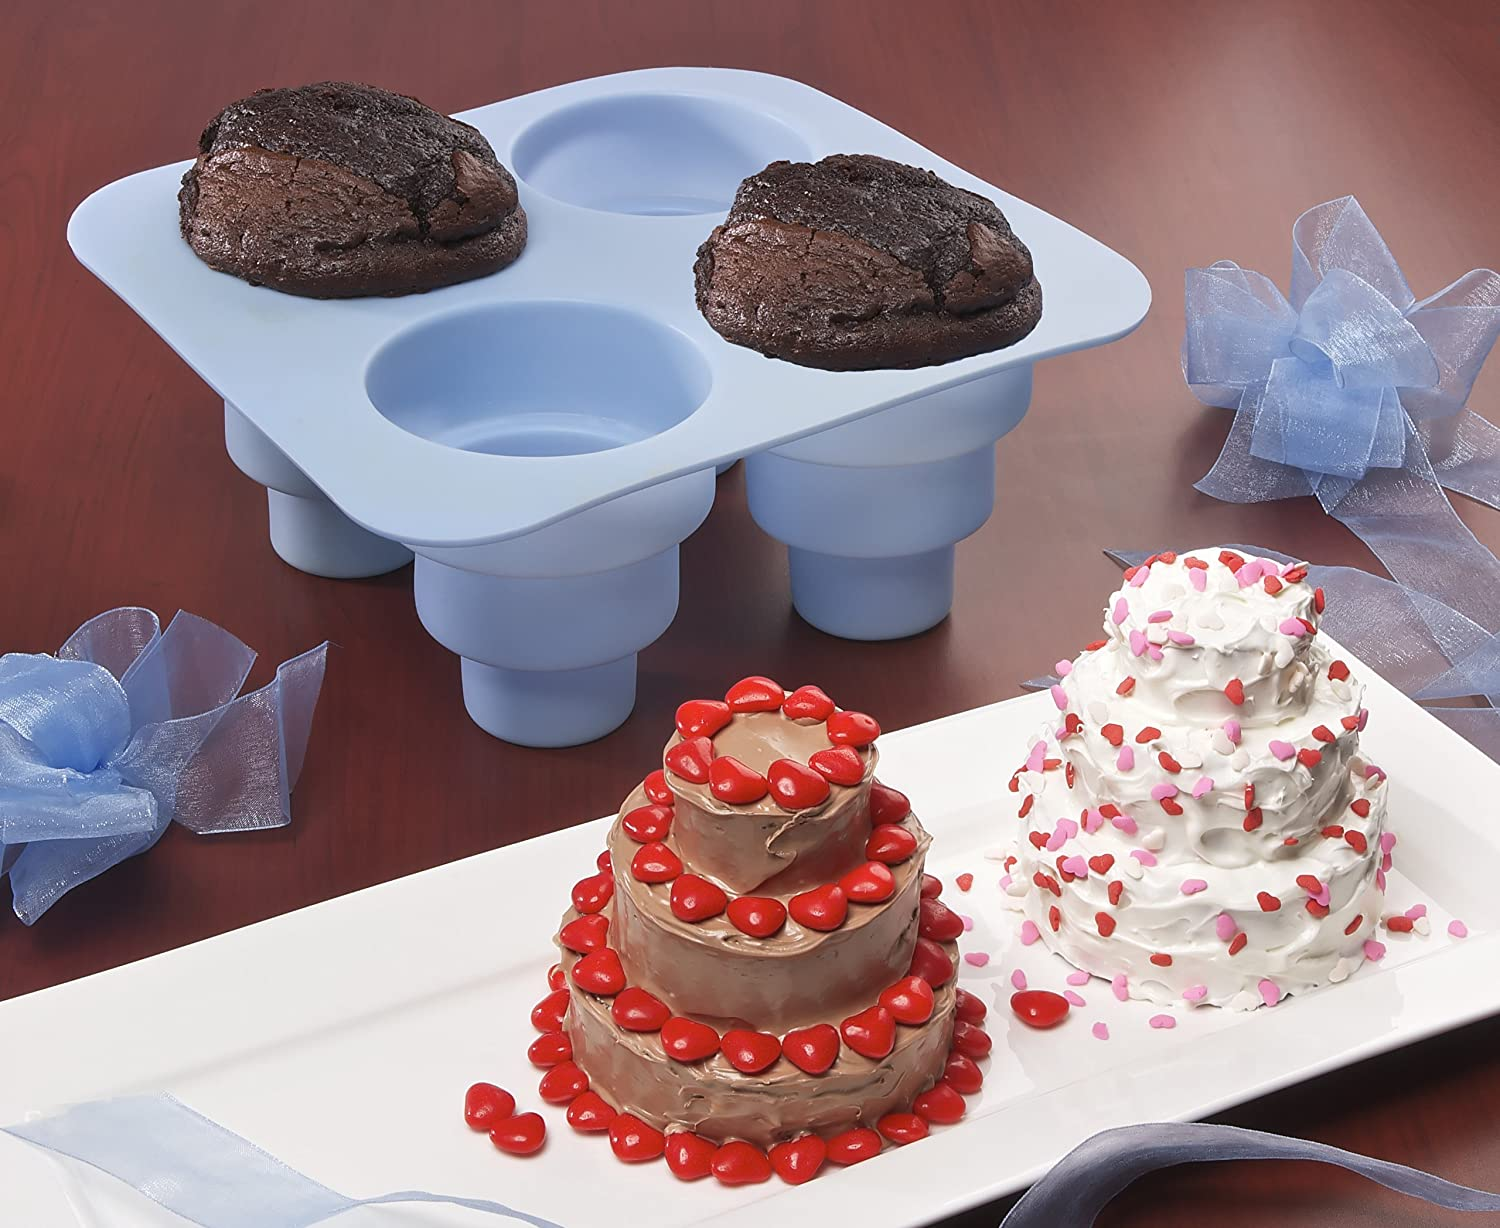 Details about  /2 pk Silicone 2 Tier Circle Mold Topsy Turvy Cake